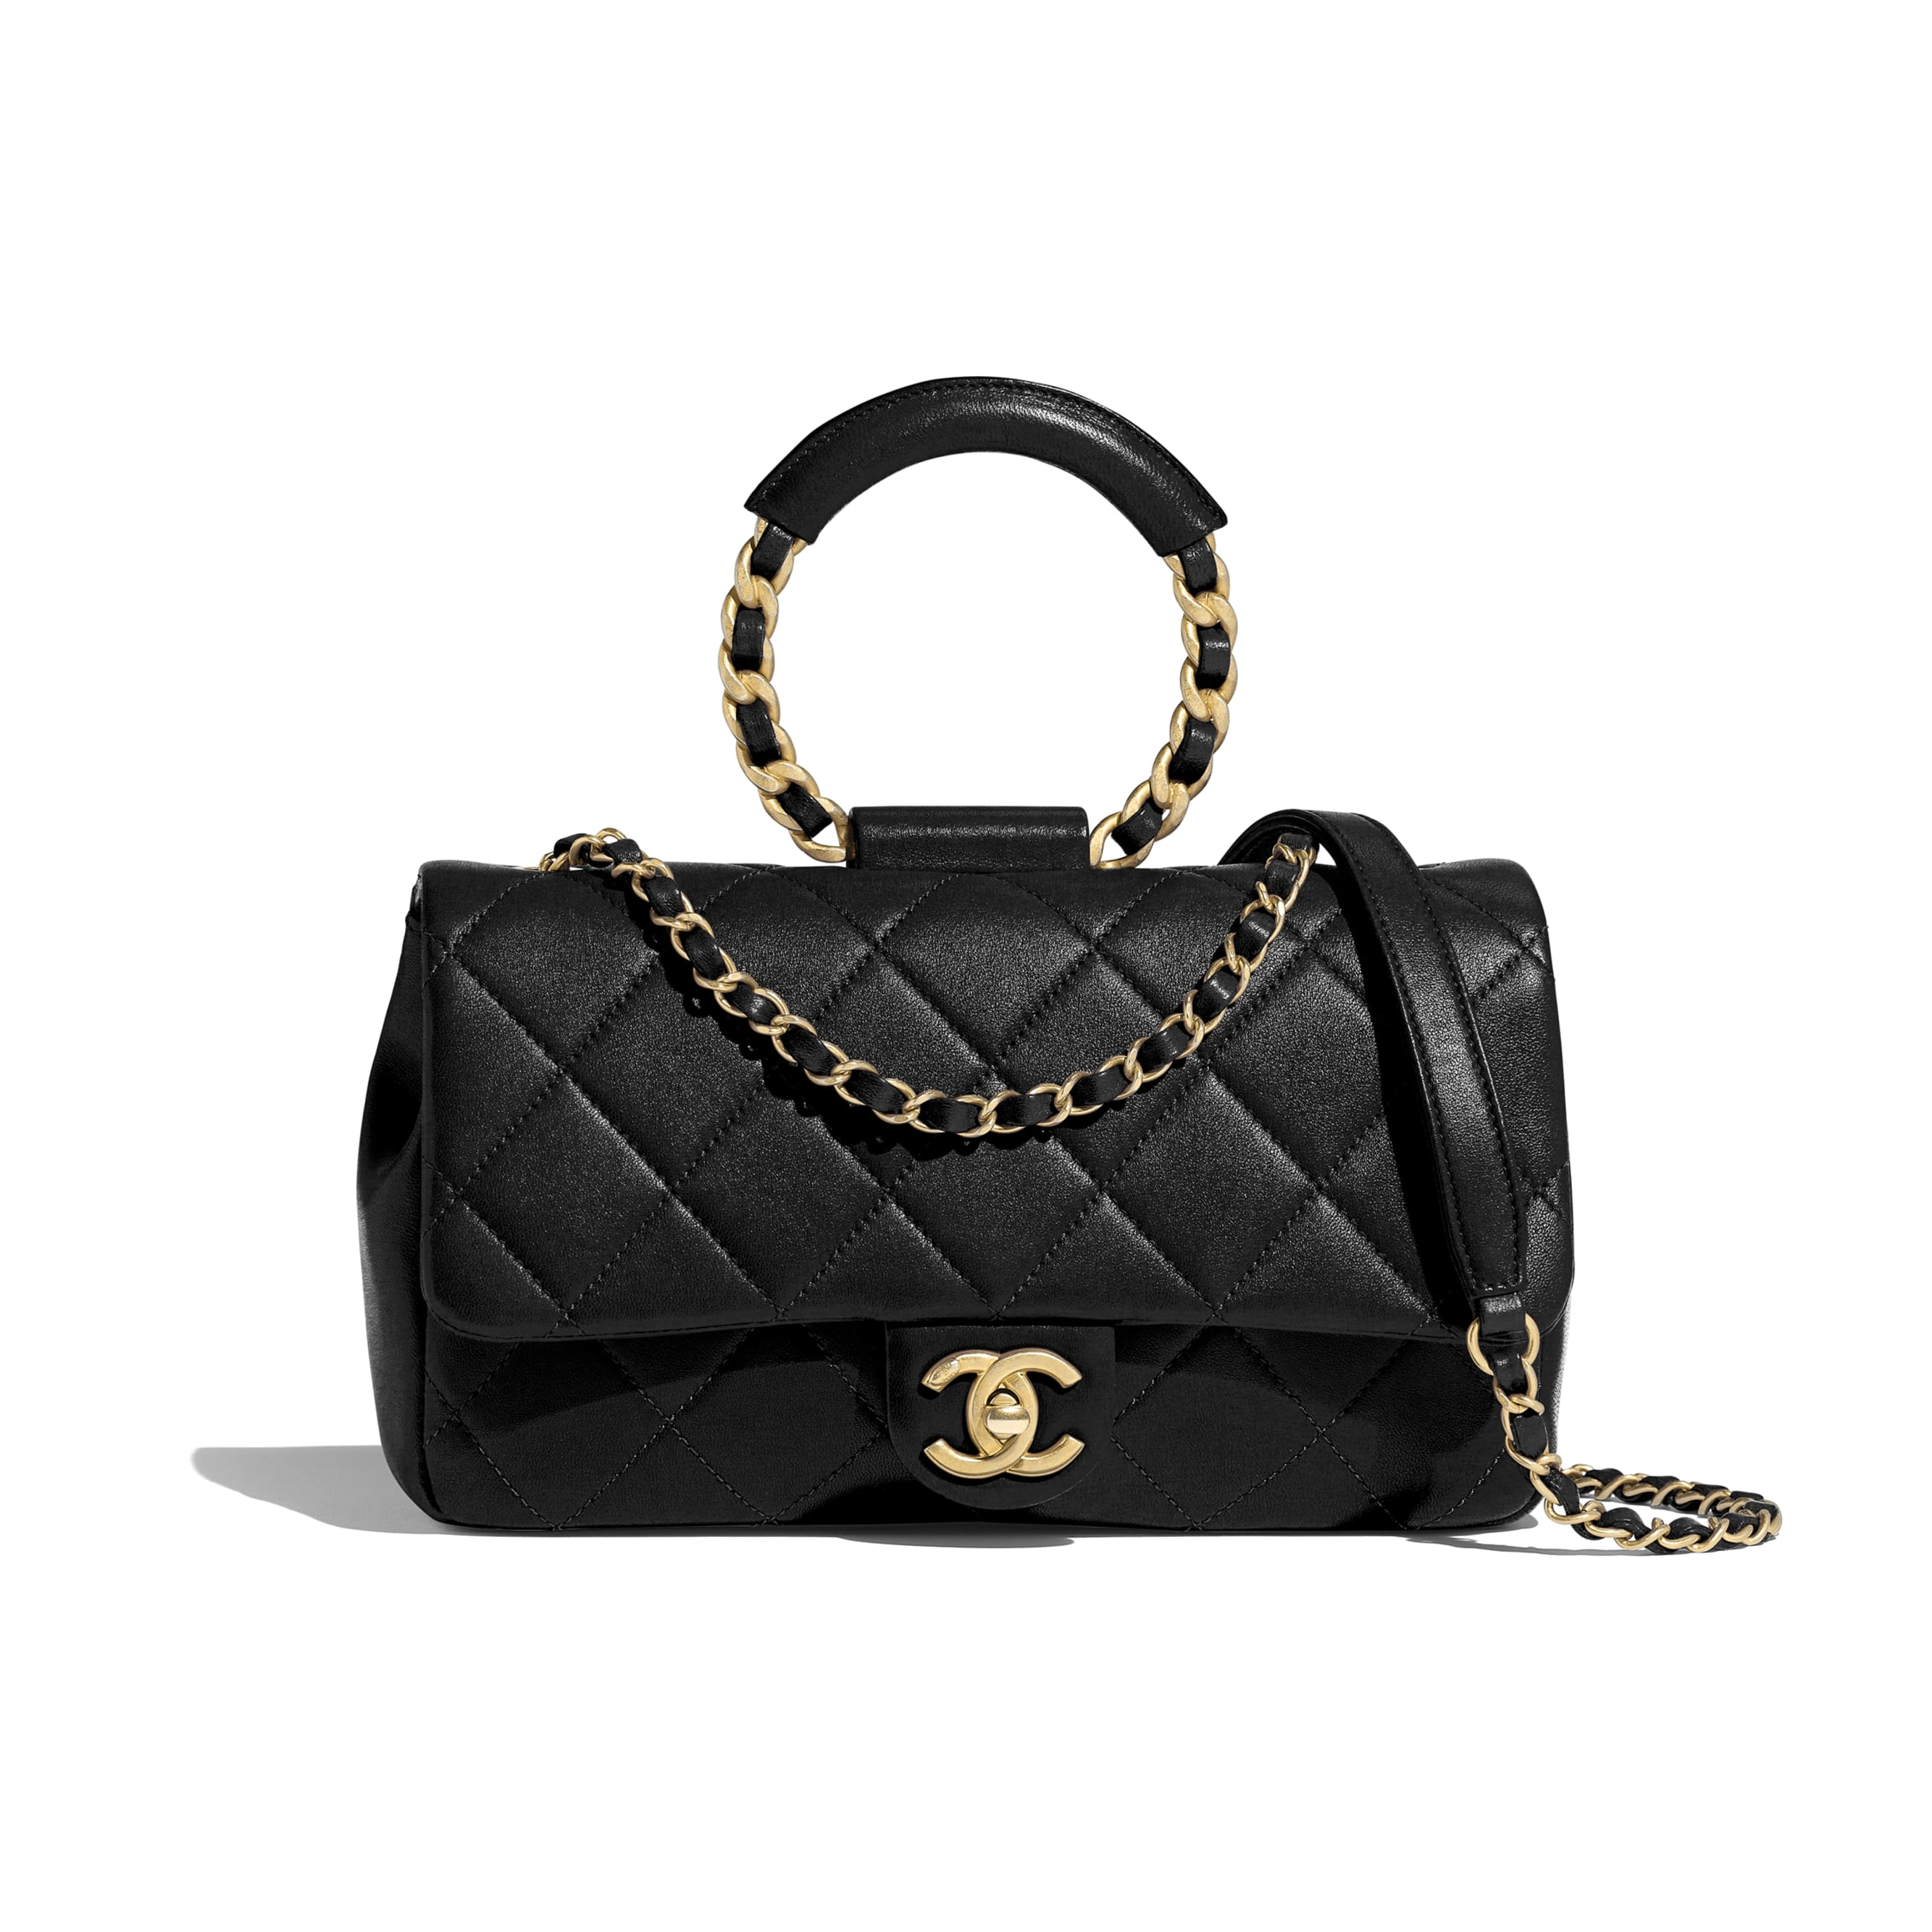 Flap Bag - Black - Lambskin & Gold Metal  - CHANEL - Default view - see standard sized version